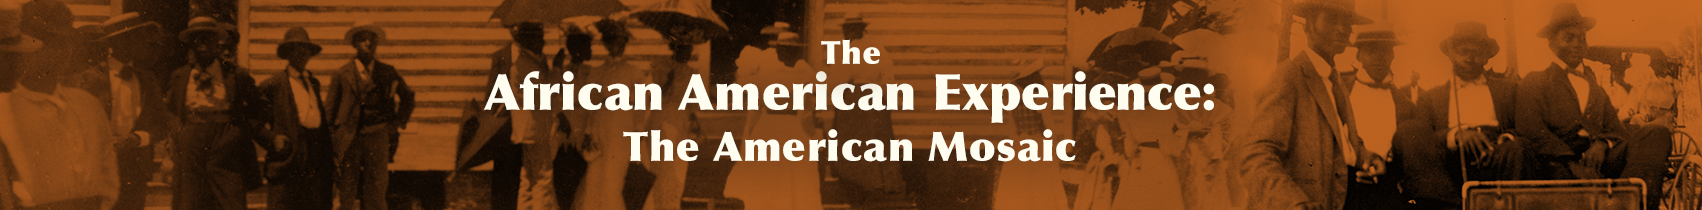 ABC-CLIO Solutions - The American Mosaic: The African American Experience